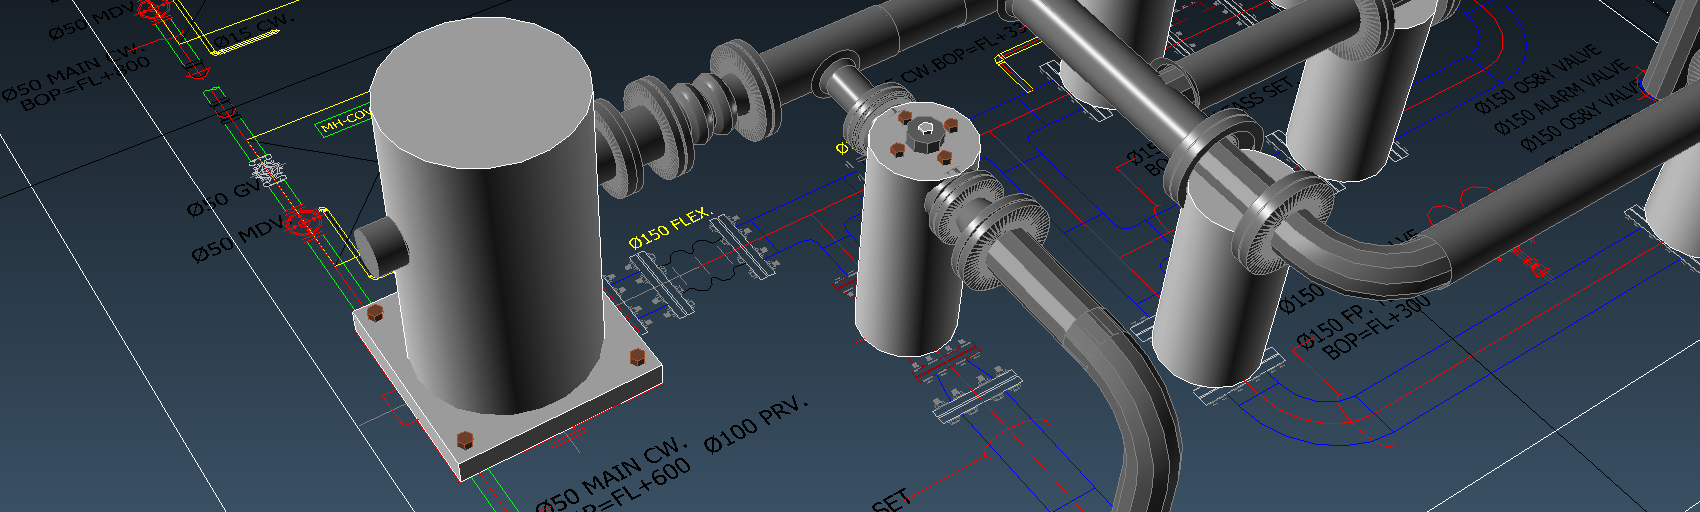 Detect3D-CAD-Creation-Pipes